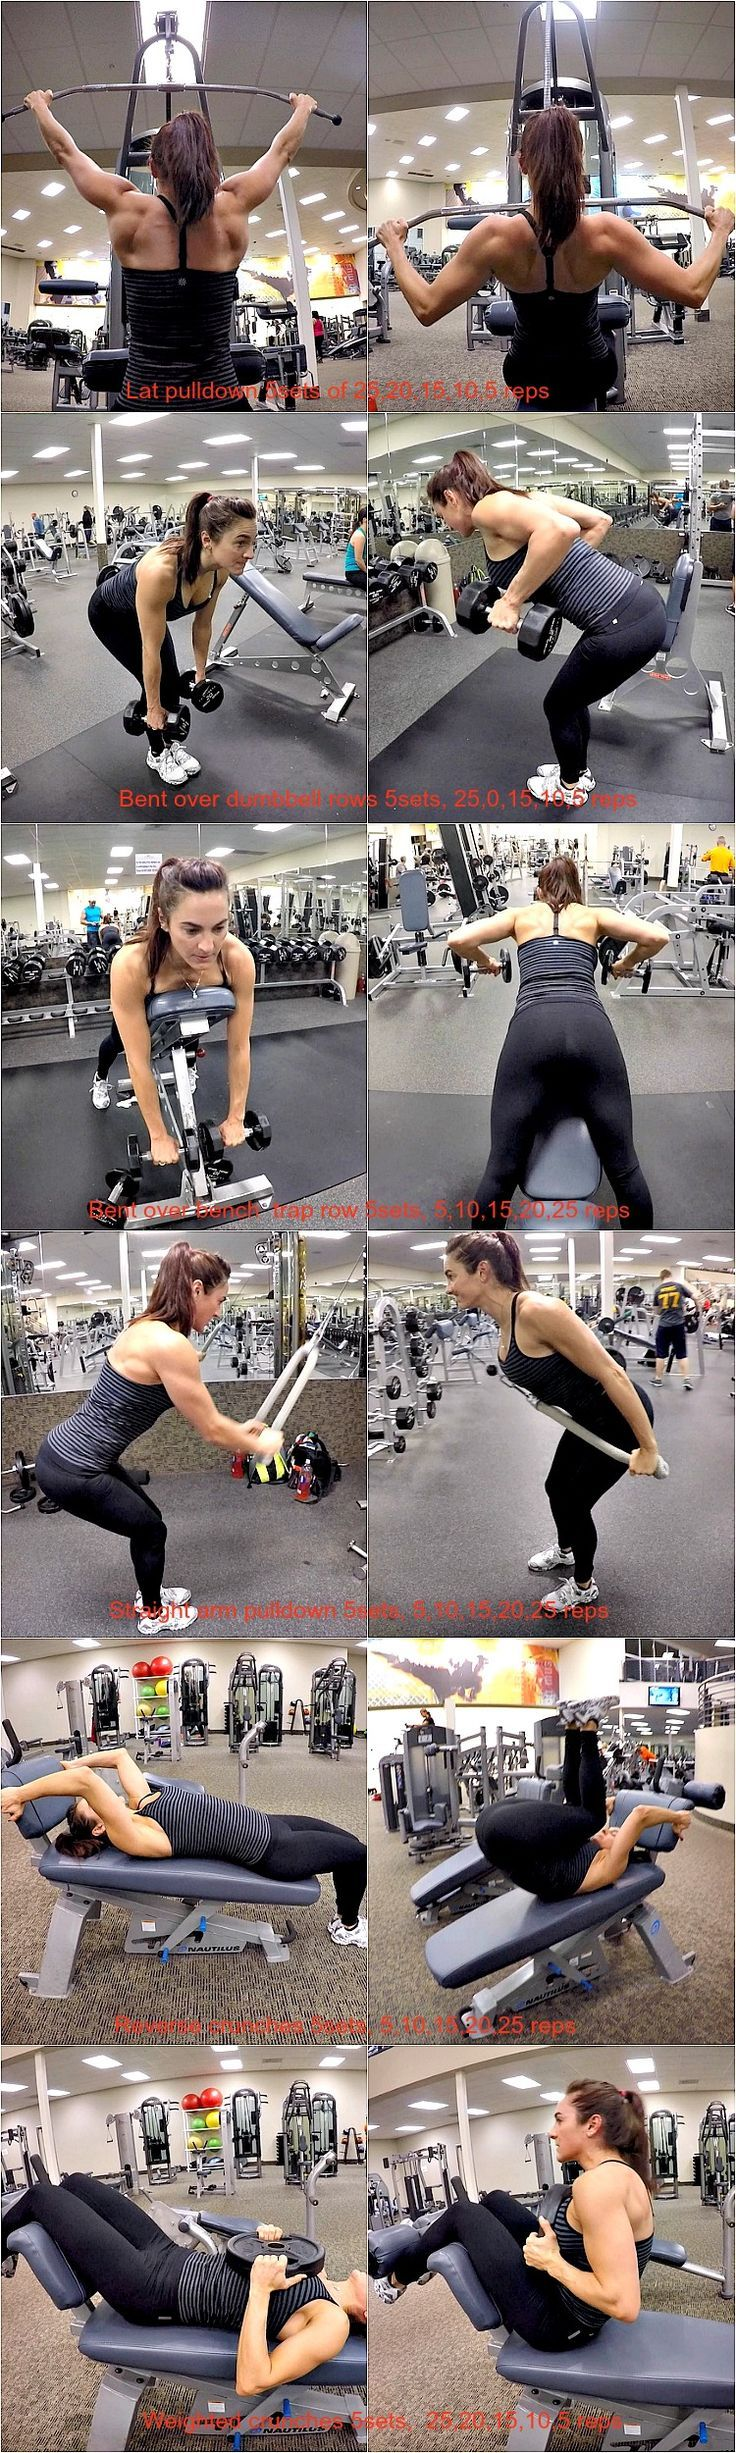 cool 10 Weeks To Fitness-Day 30: Back & Abs | Fitness Food Diva